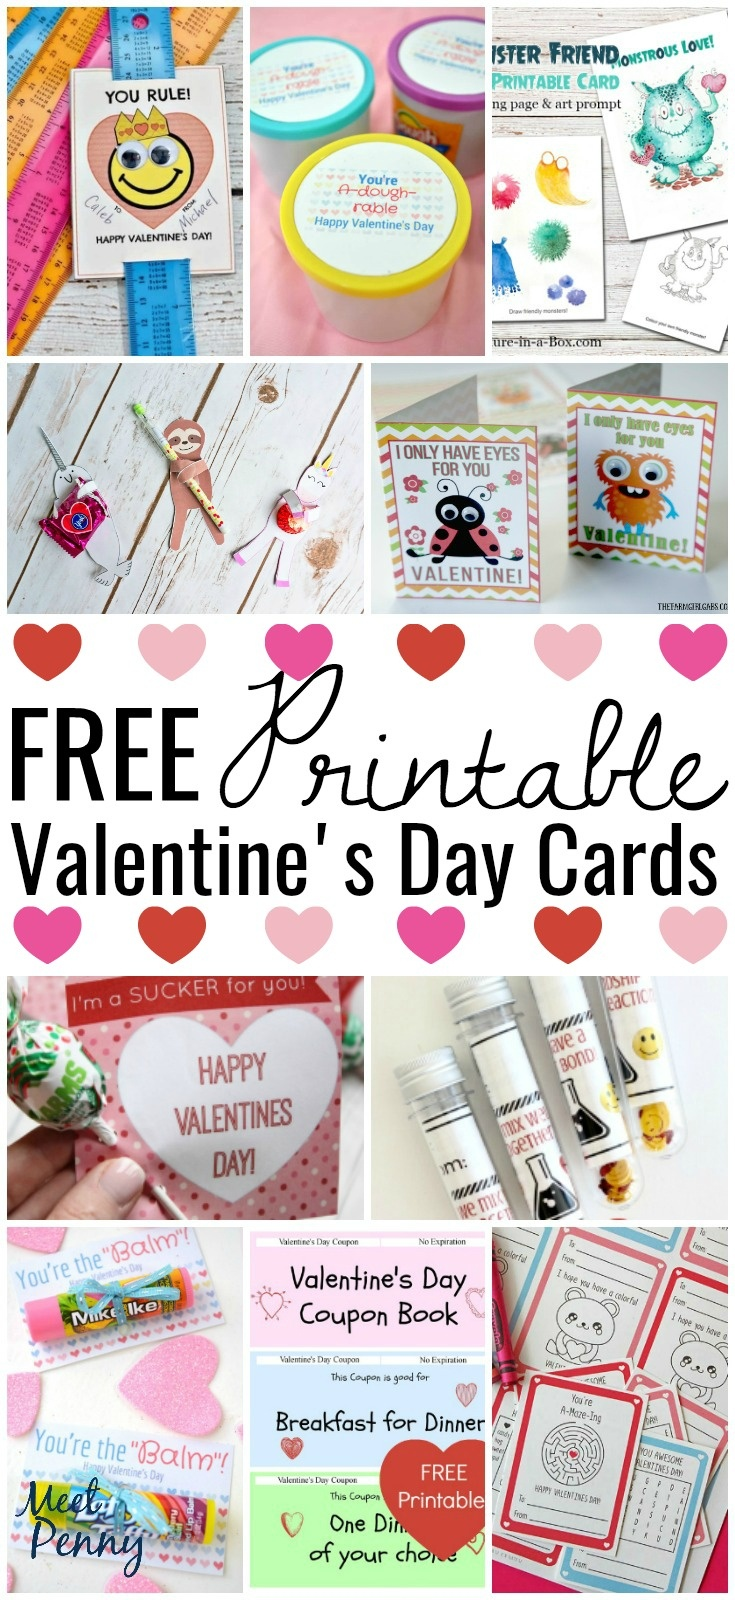 Free Printable Valentines Cards - Meet Penny - Free Printable School Valentines Cards